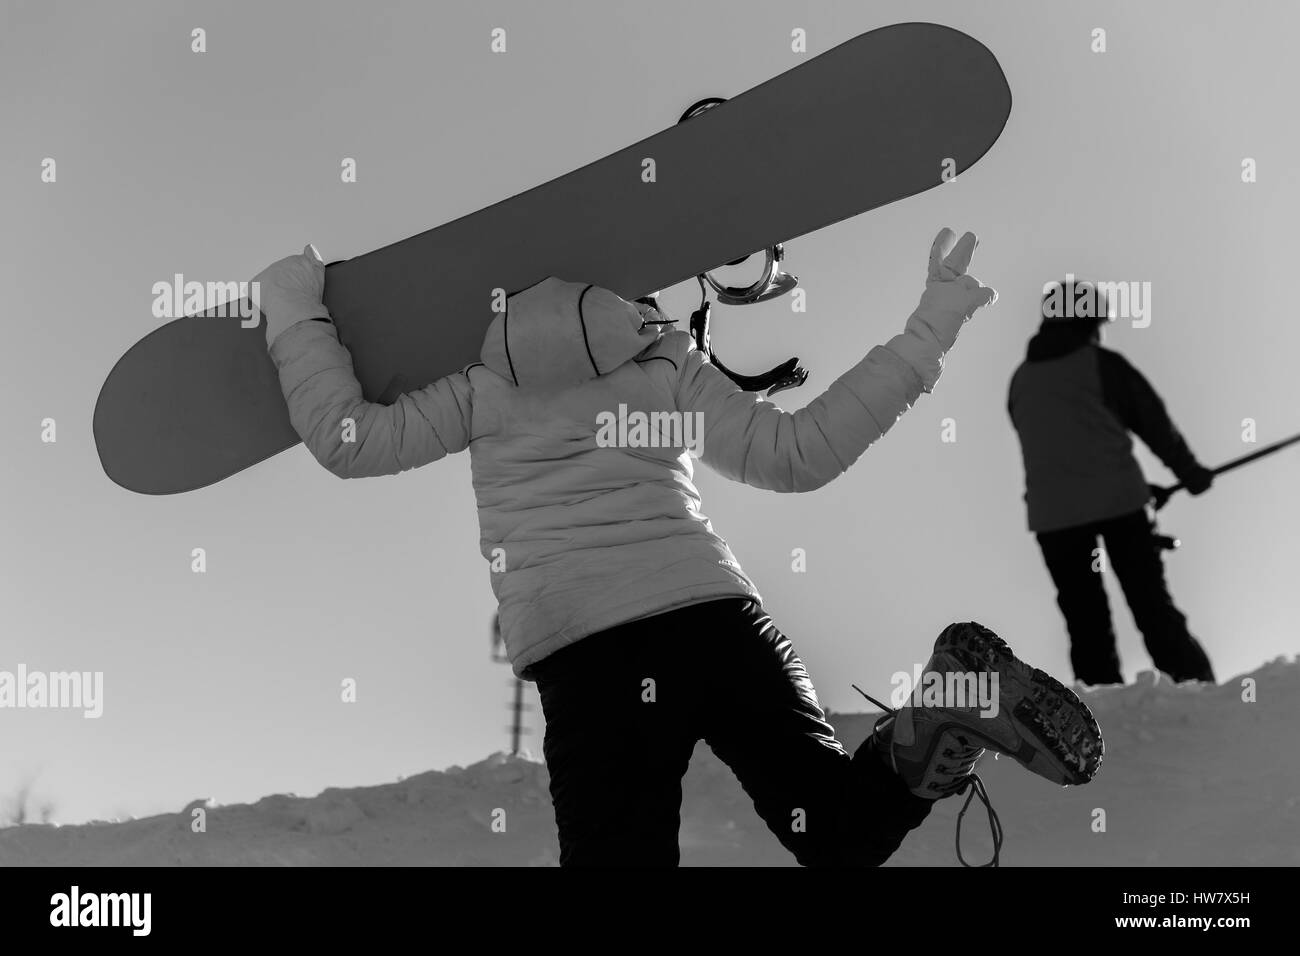 Girl running on mountain terrain - Stock Image